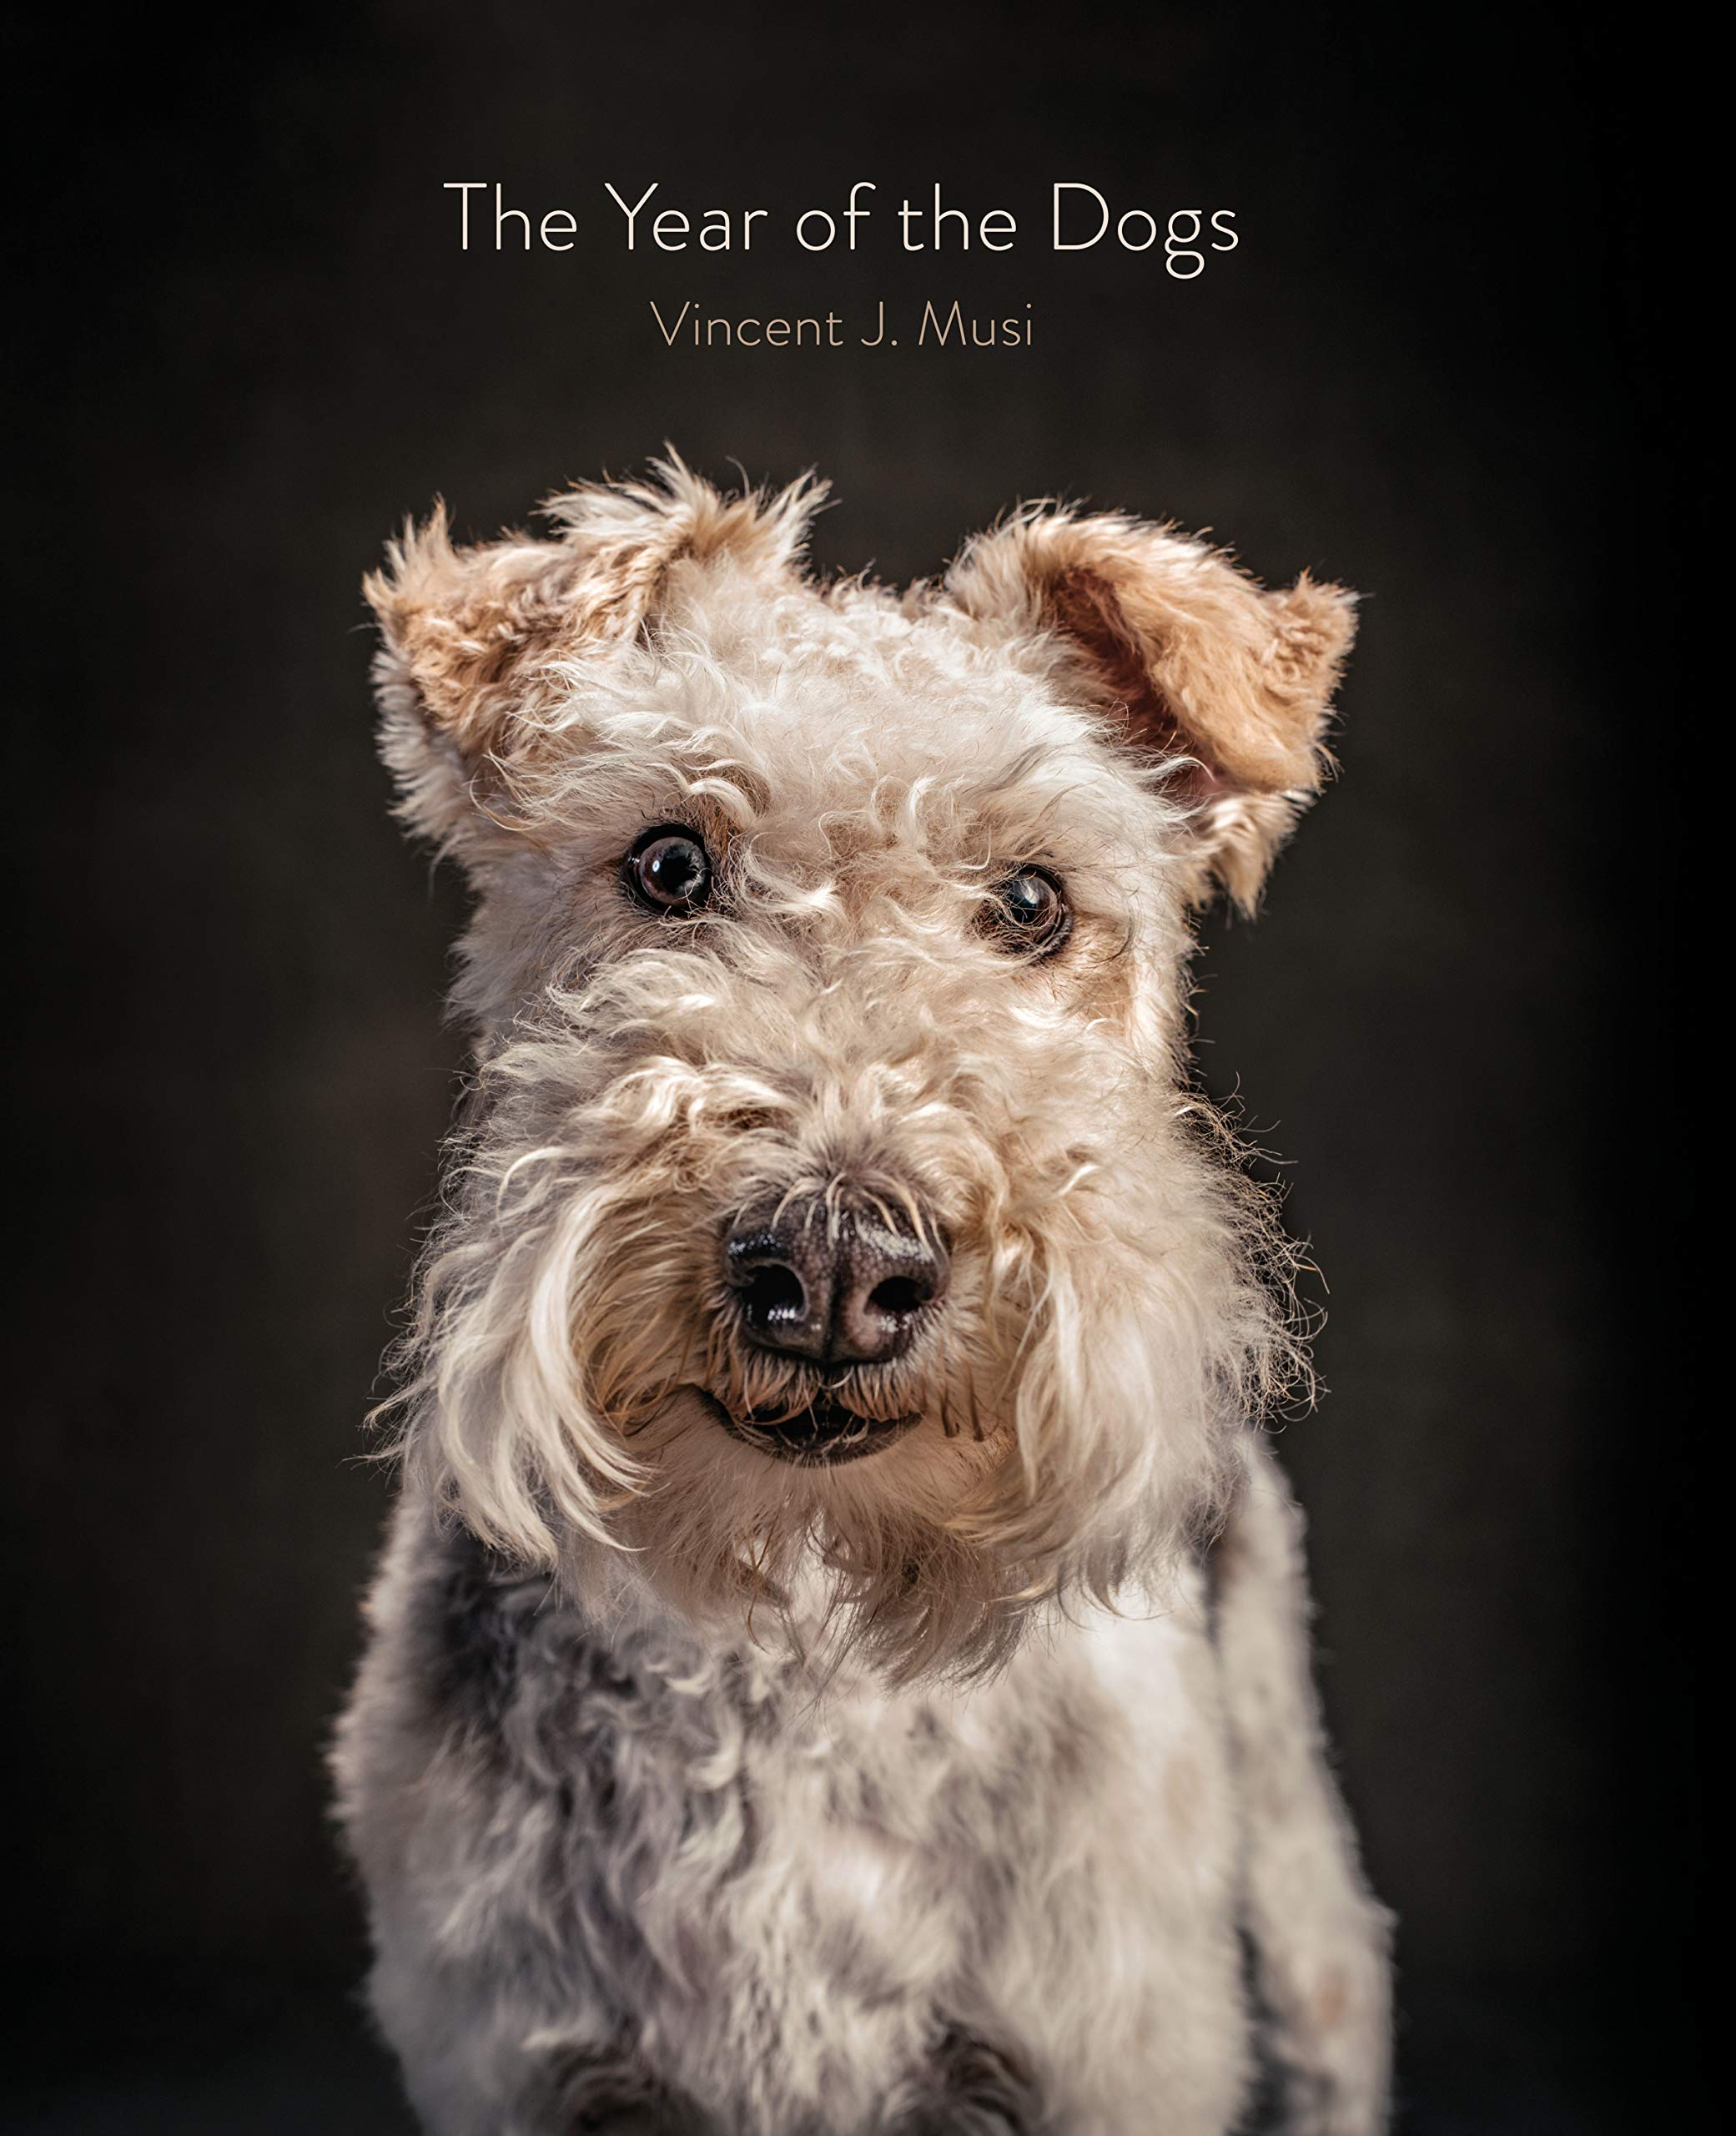 The Year of the Dogs book cover